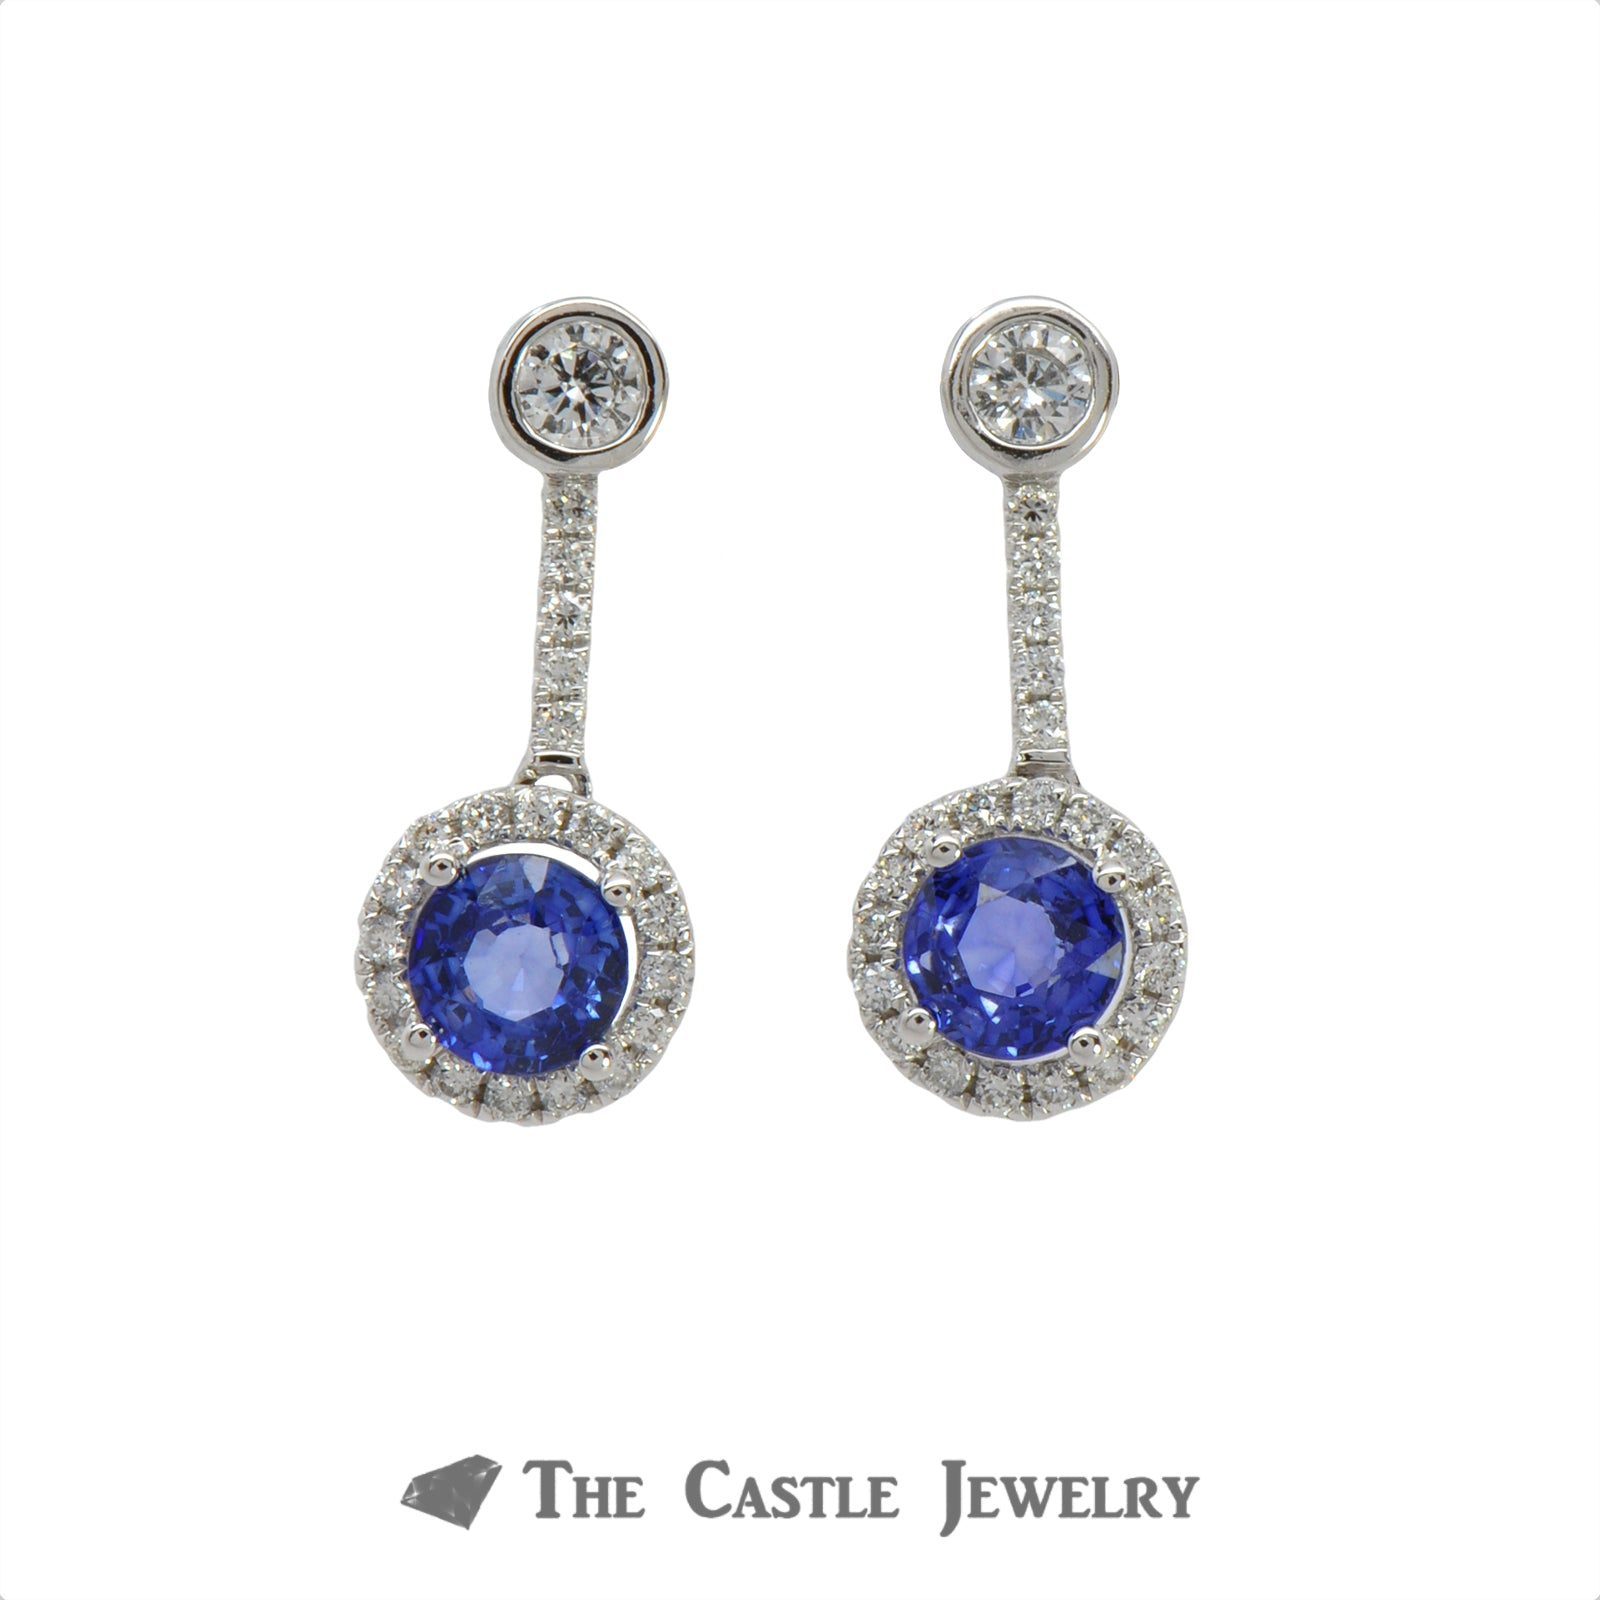 1.28cttw Round Sapphire Earrings with .50cttw Diamond Halo and Accents in 14k White Gold